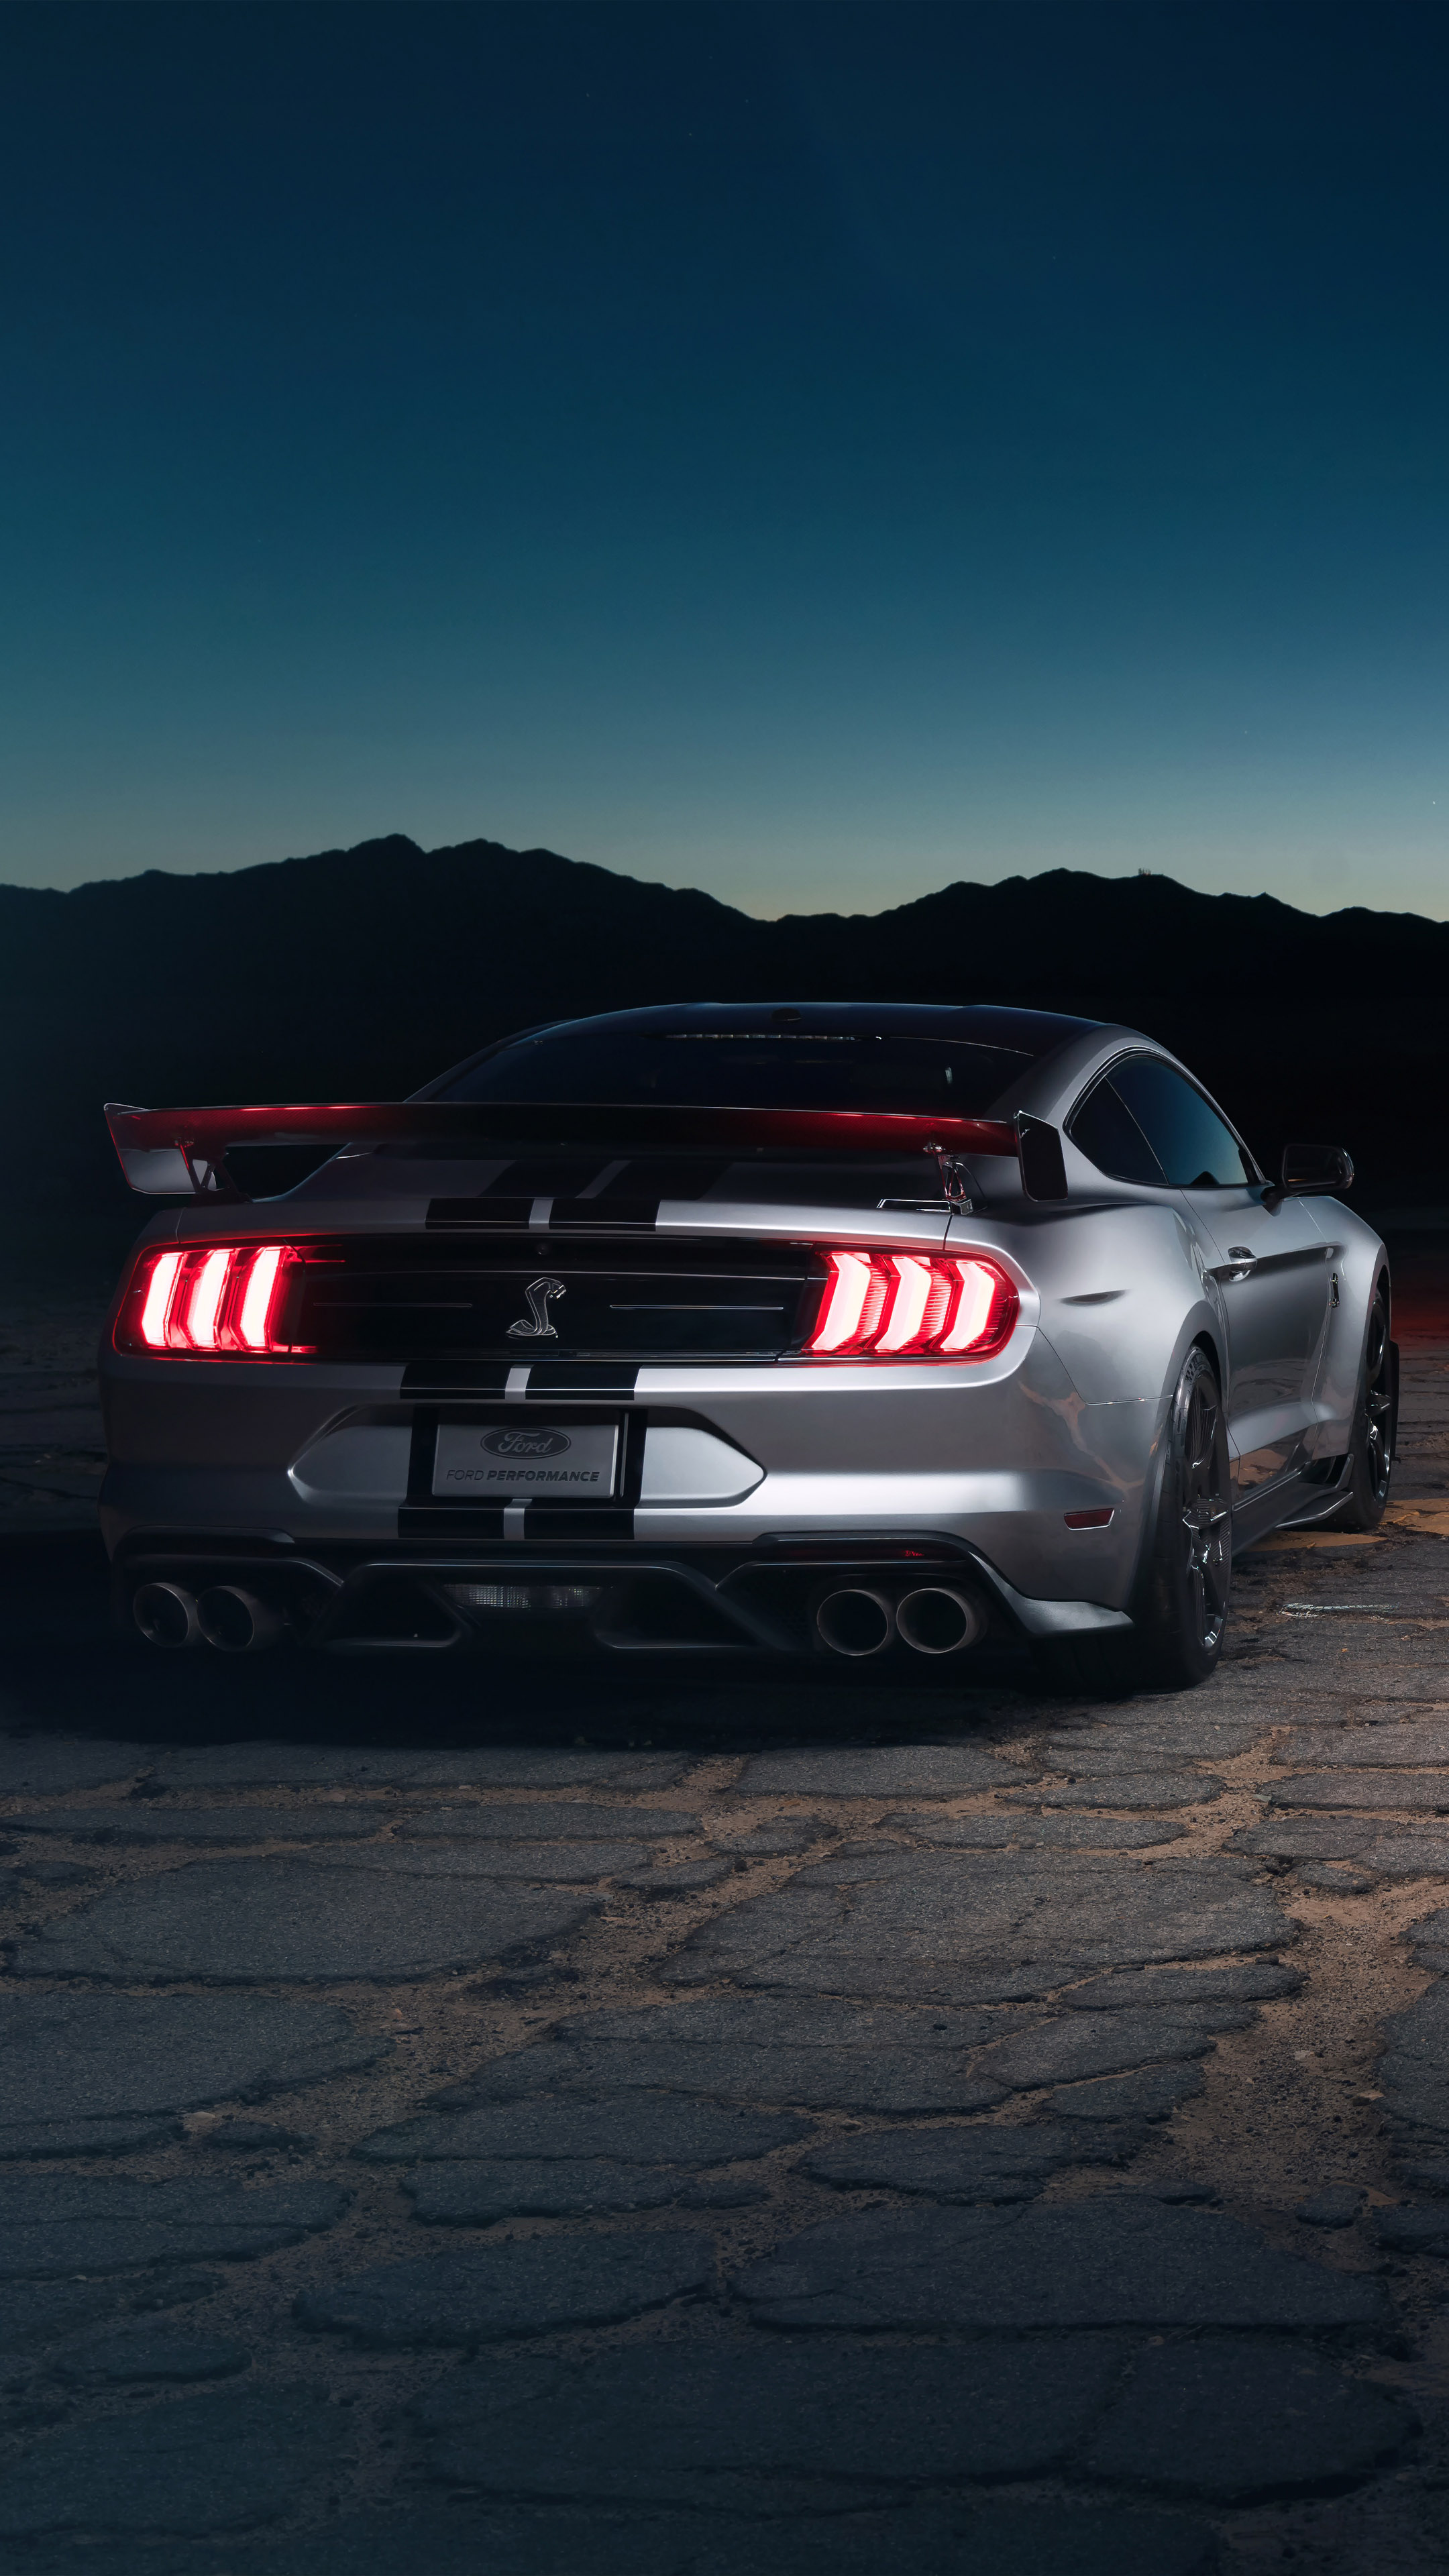 Ford Mustang Shelby GT500 4K Ultra HD Mobile Wallpaper